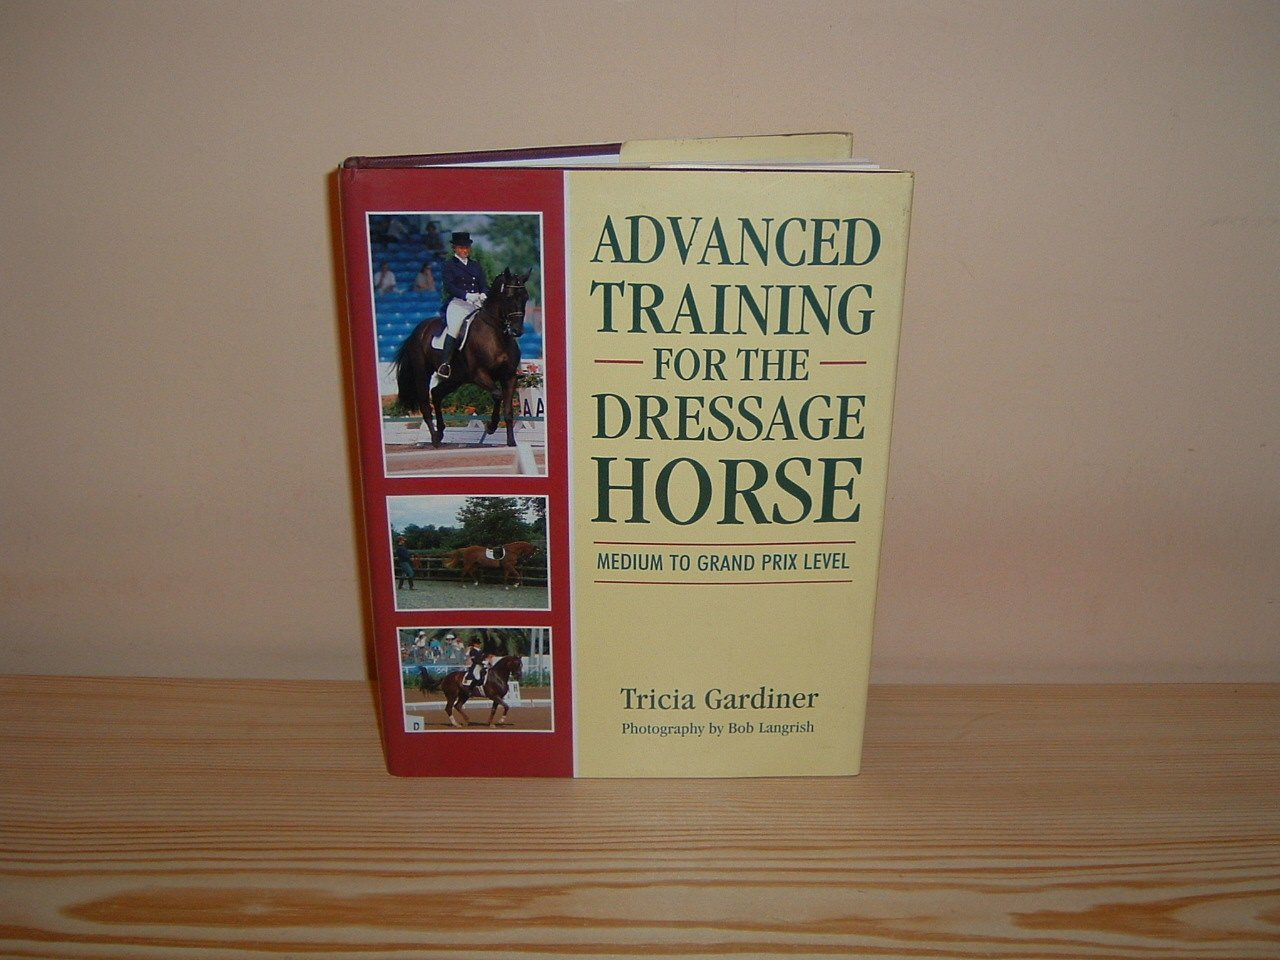 Advanced Training for the Dressage Horse: Medium to Grand Prix Level